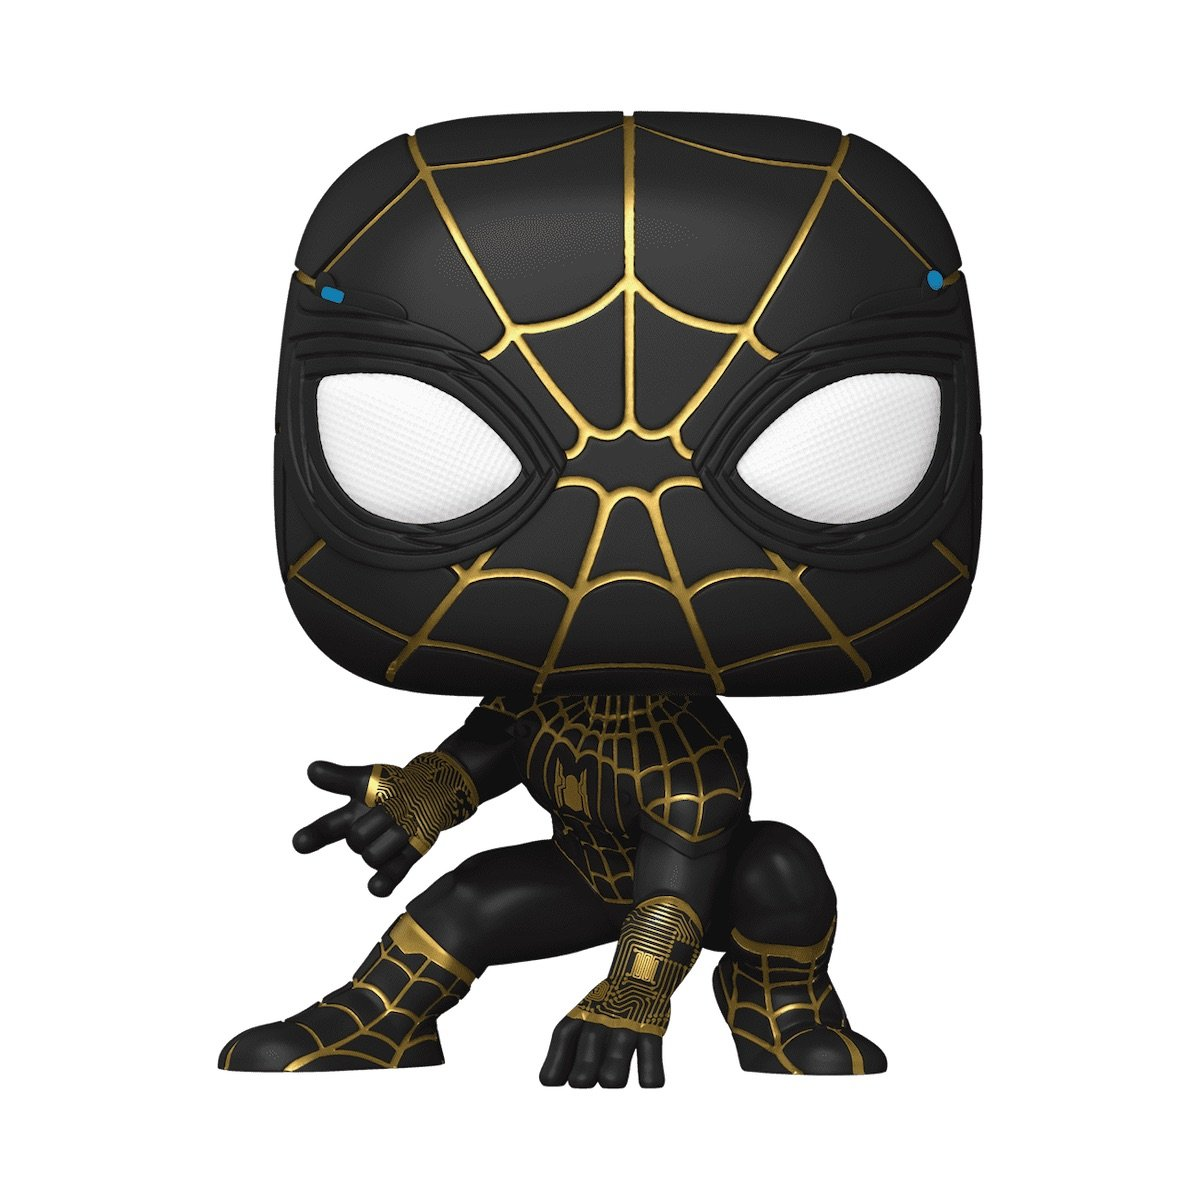 Spider-Man: No Way Home black and gold suit